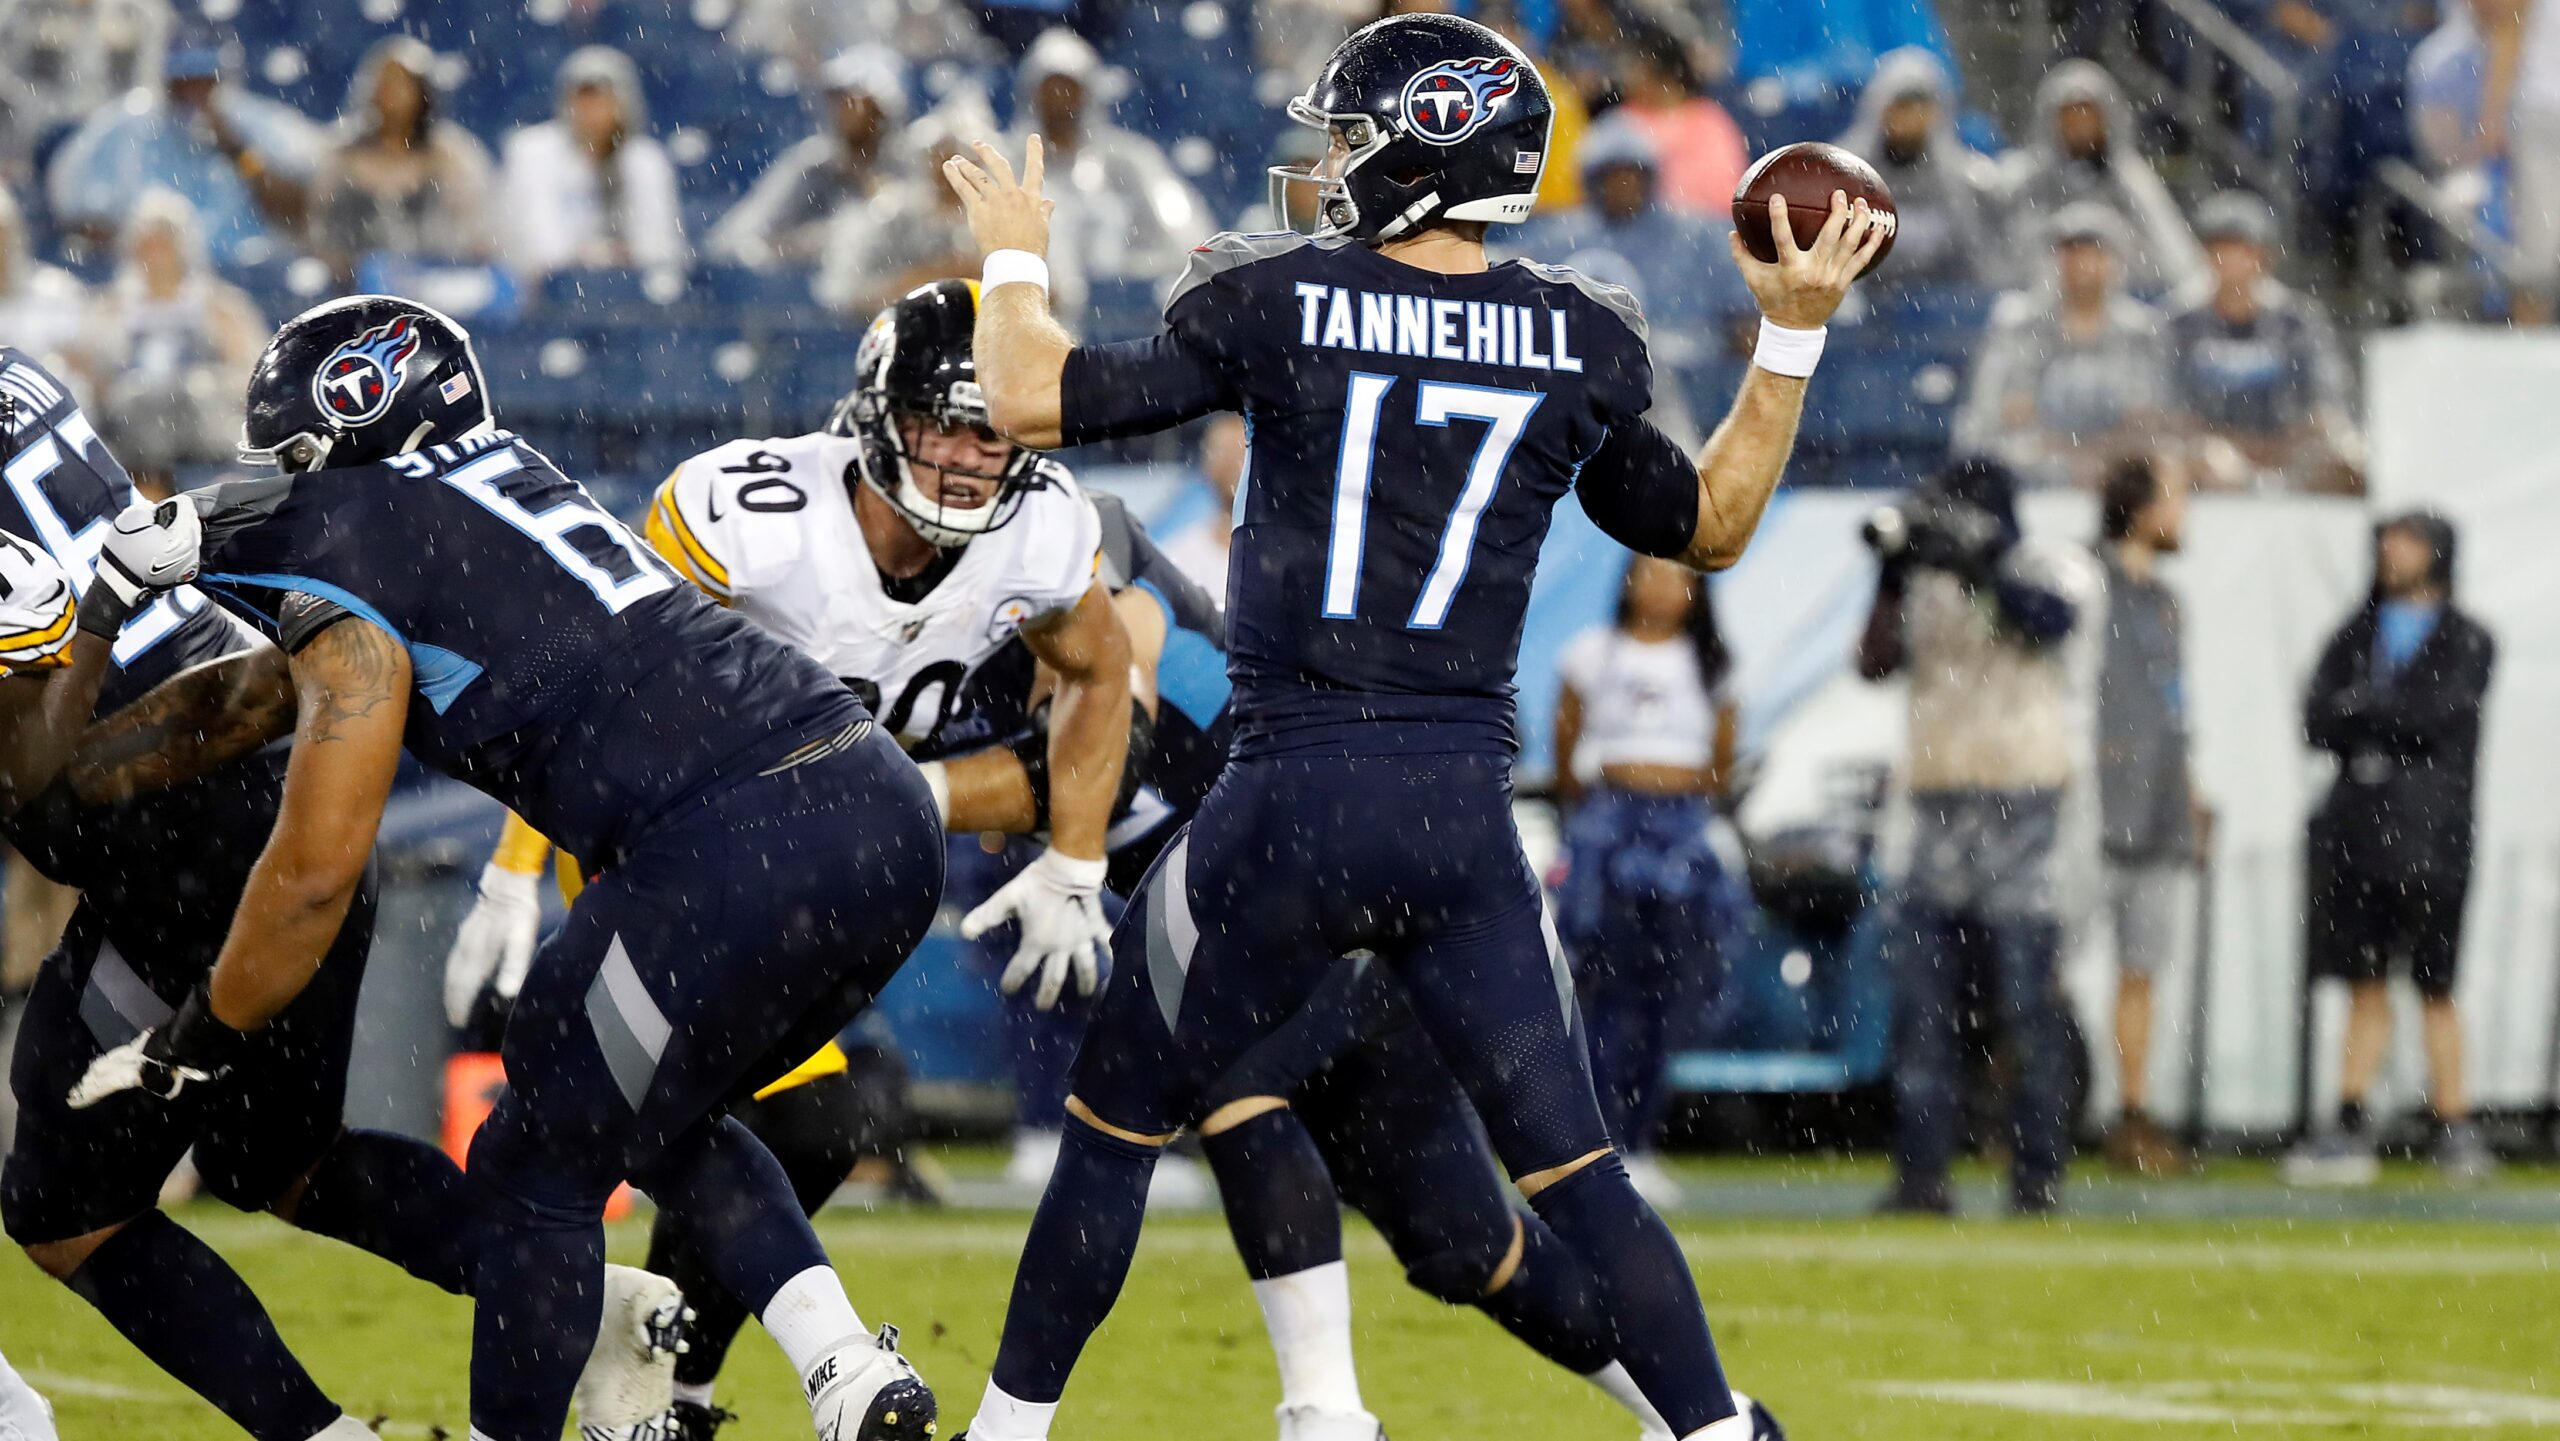 Steelers vs Titans live stream: how to watch NFL week 7 online from anywhere